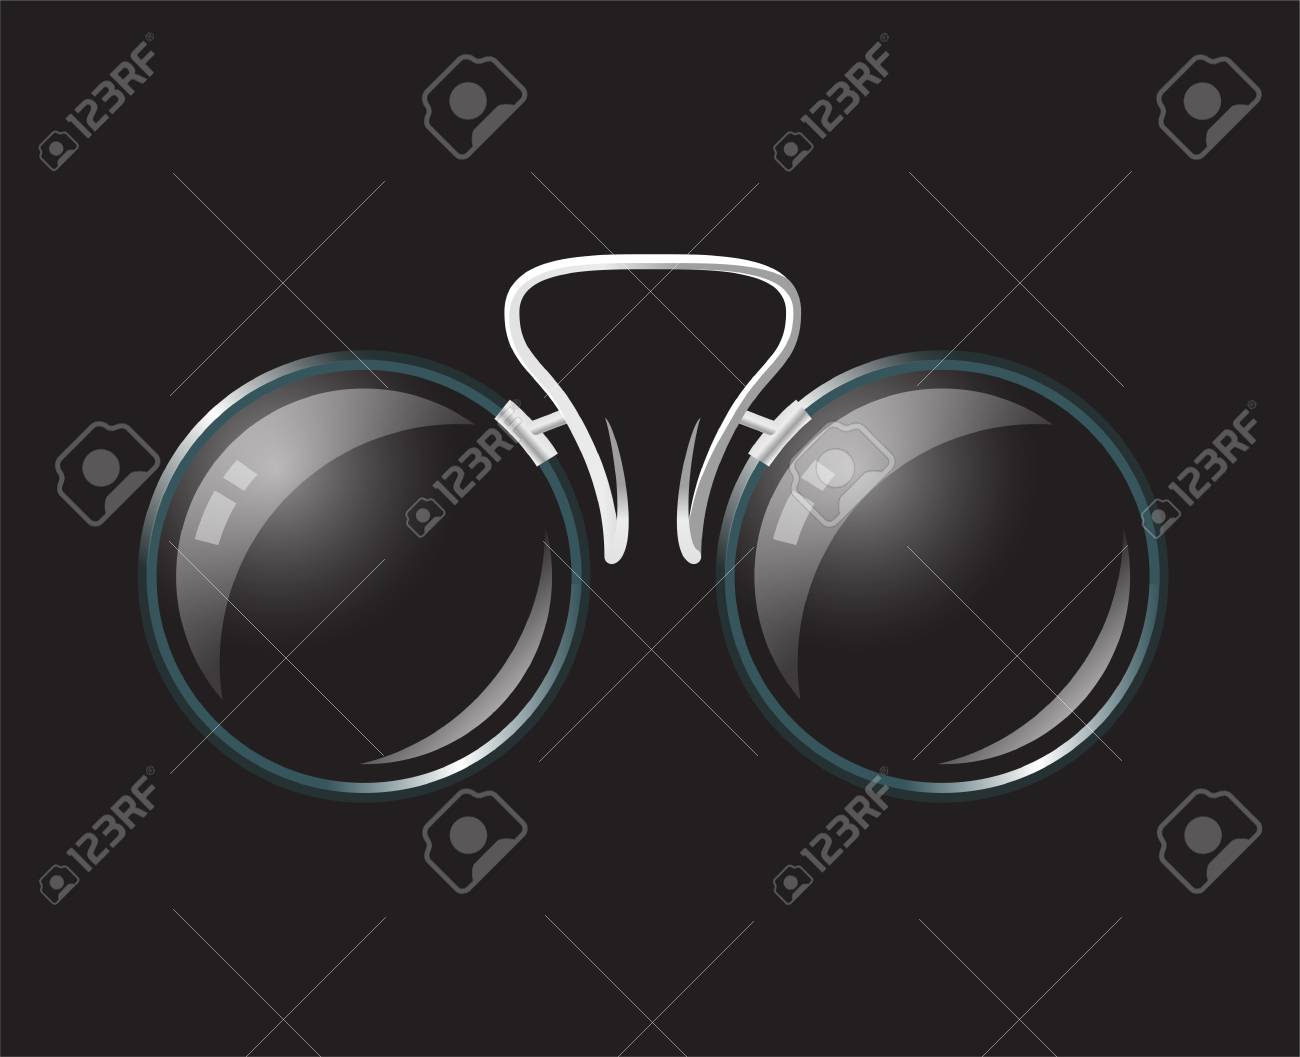 aa1c6d7871 Vector - Vintage eyeglasses pince-nez - modern vector realistic isolated  object illustration